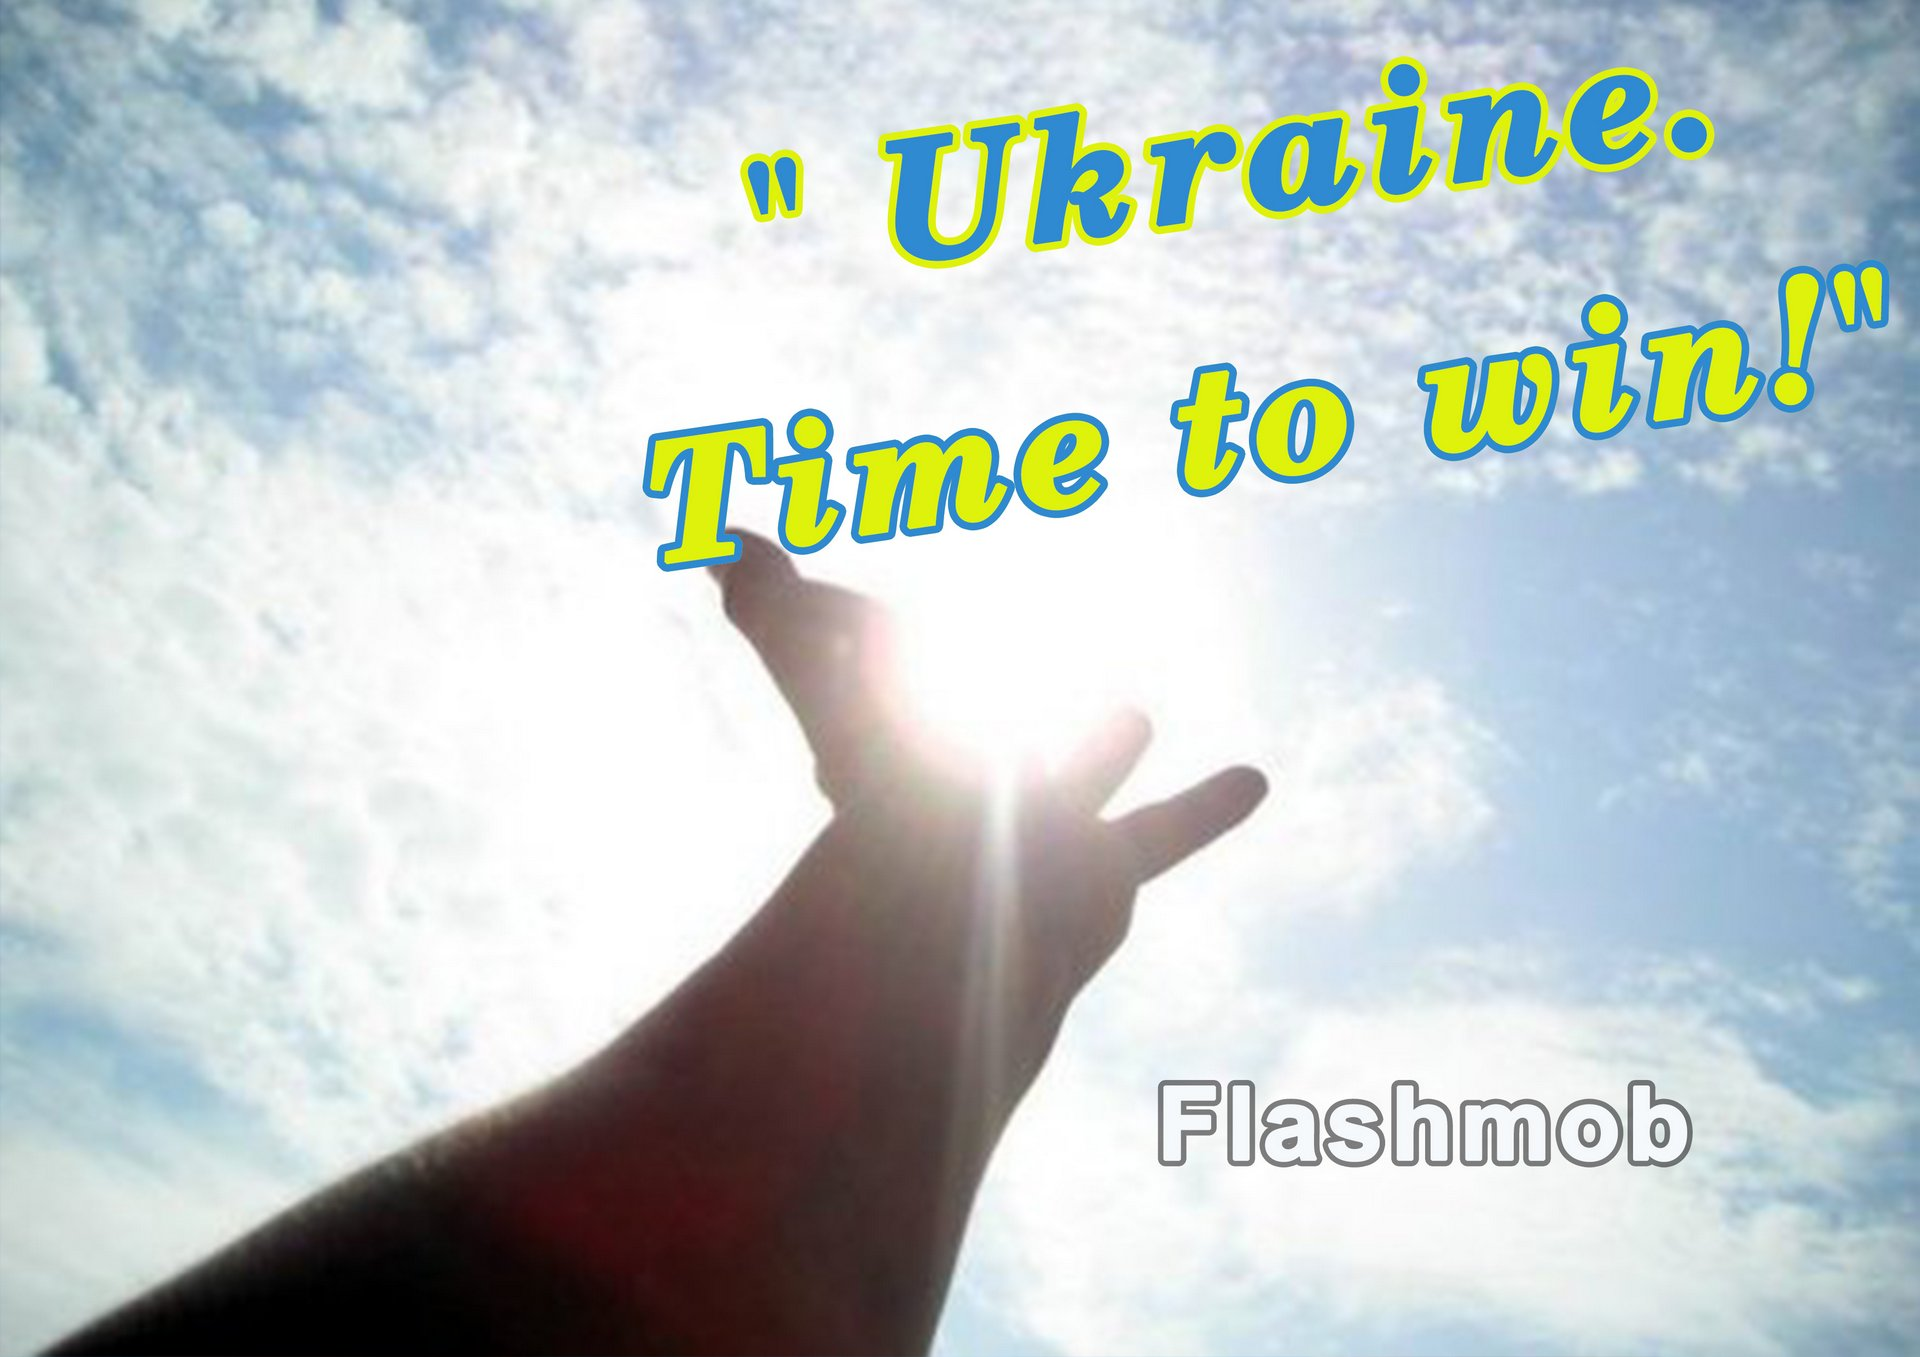 #MannequinChallenge# «Ukraine. Time to win!»